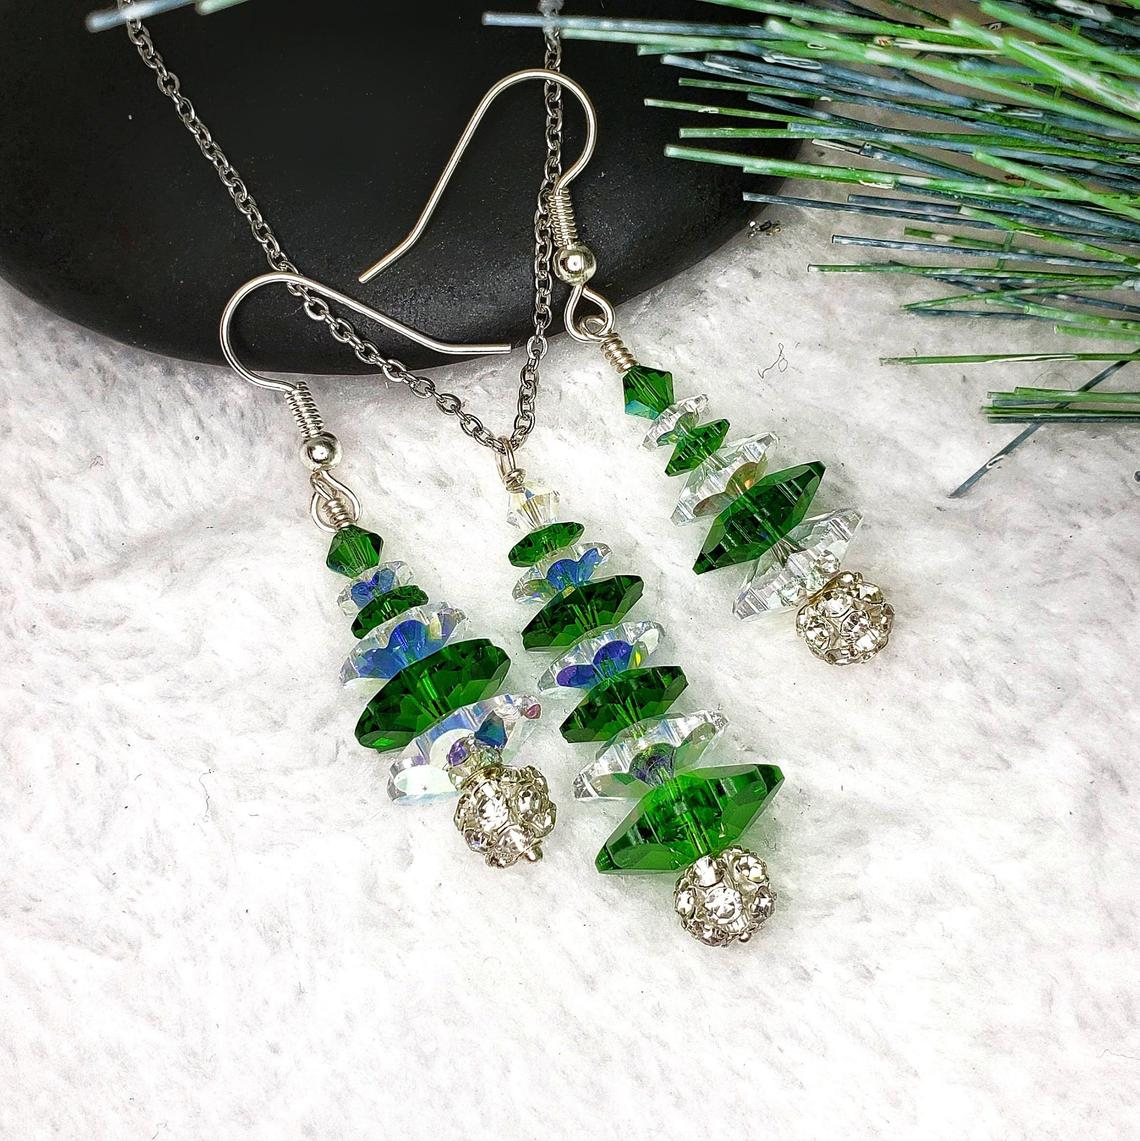 Green Swarovski Crystal Tree Necklace and Earring Set, with Rhinestone Ball Base Winter Forest Collection